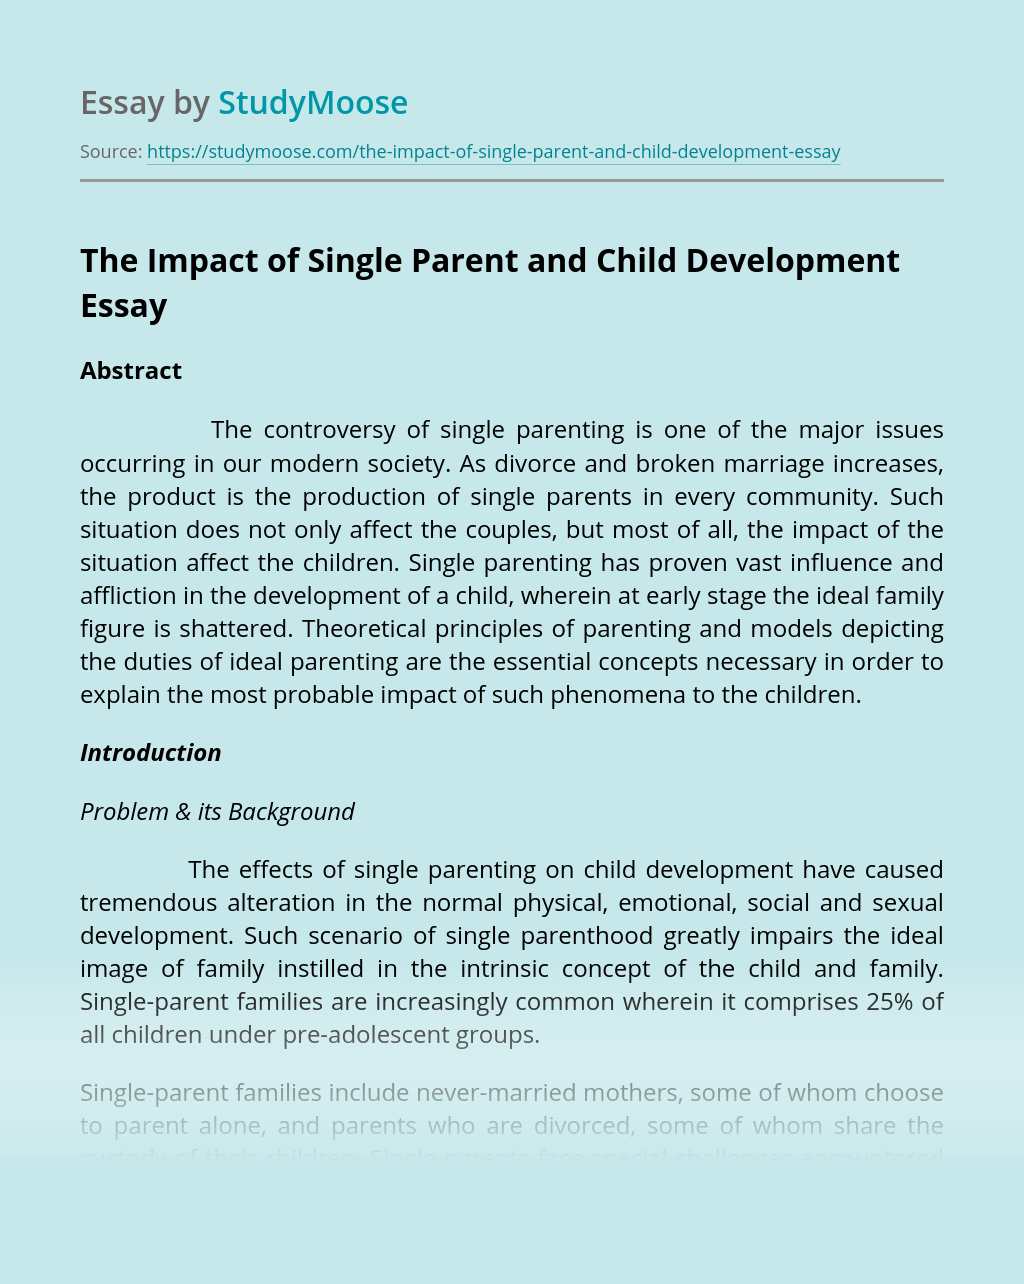 The Impact of Single Parent and Child Development